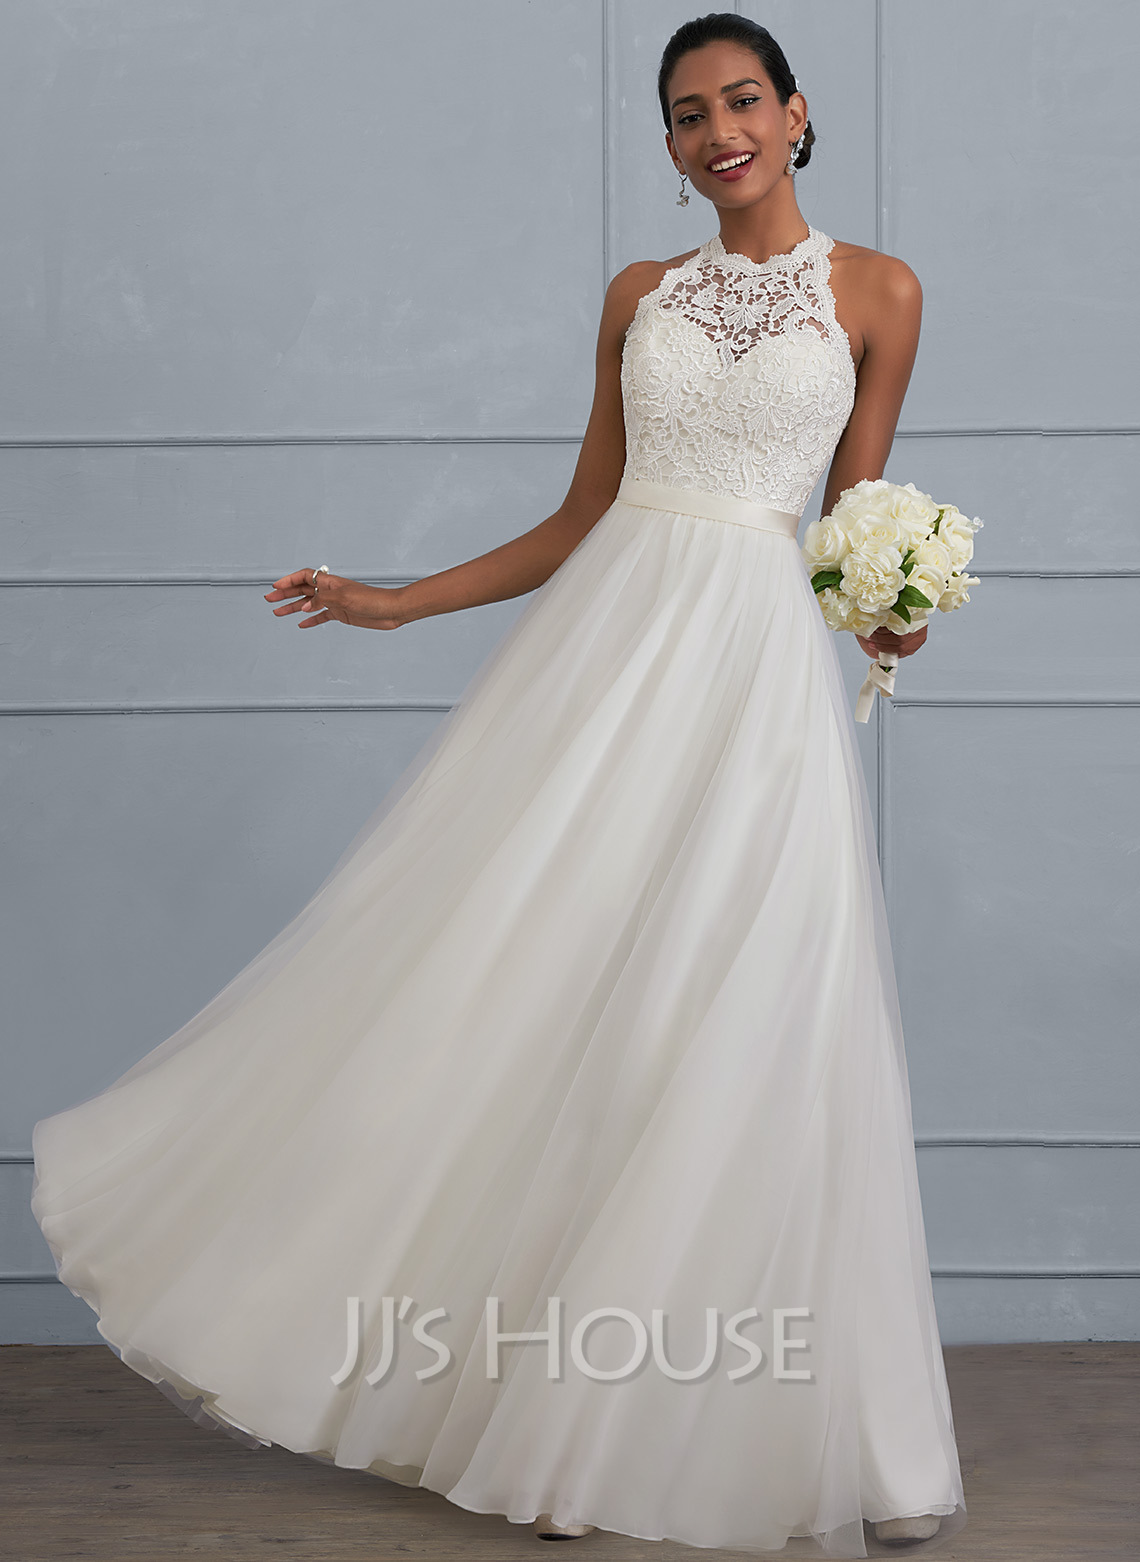 Most Popular, Garden / Outdoor, Wedding Dresses: Affordable & Under ...